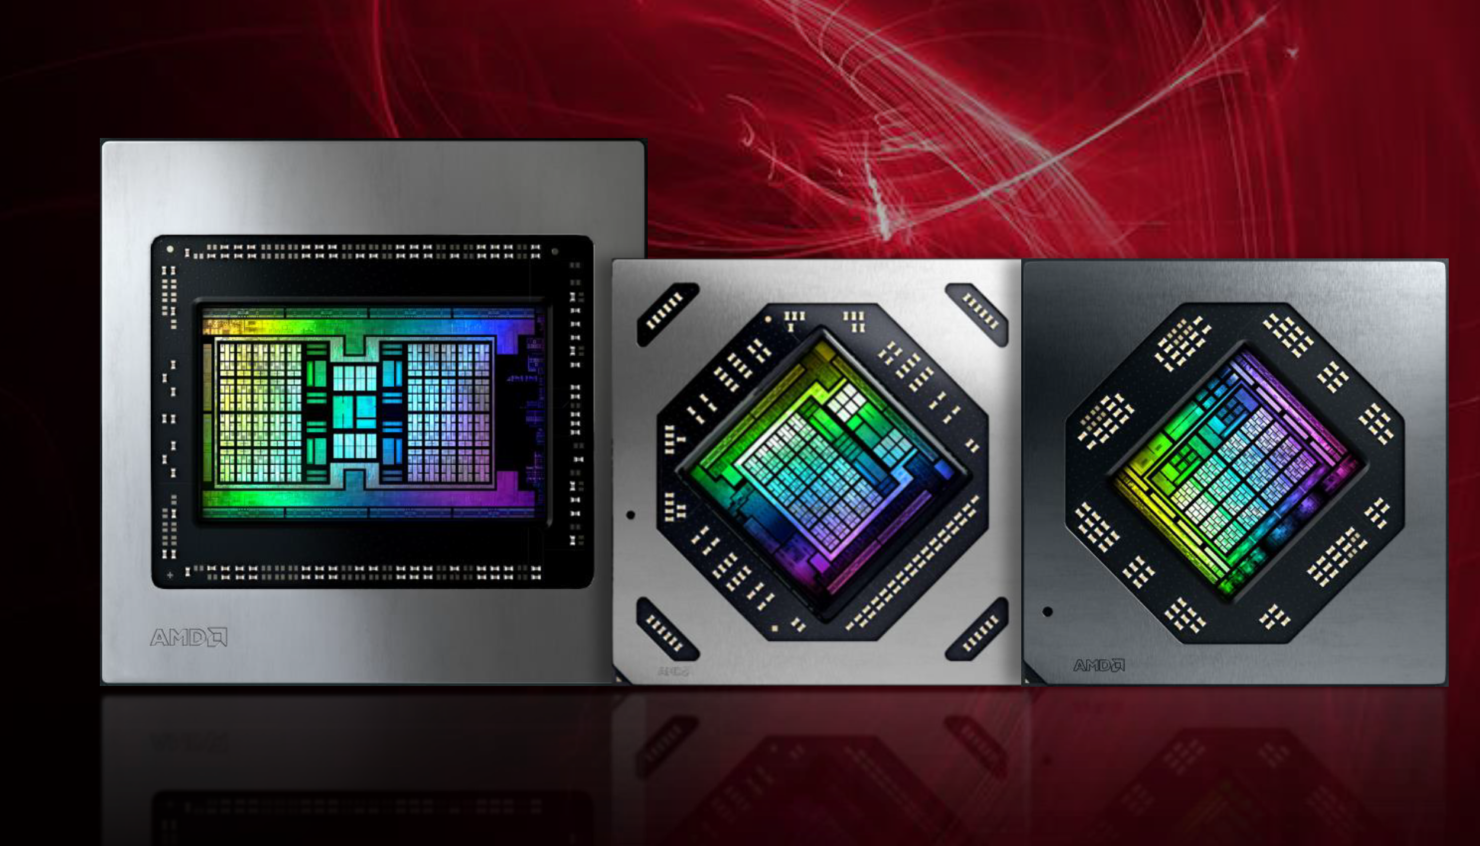 amd's-rdna-2-gpus-including-navi-21,-navi-22,-navi-23-receive-17-new-pci-ids-–-could-be-the-alleged-6nm-refresh